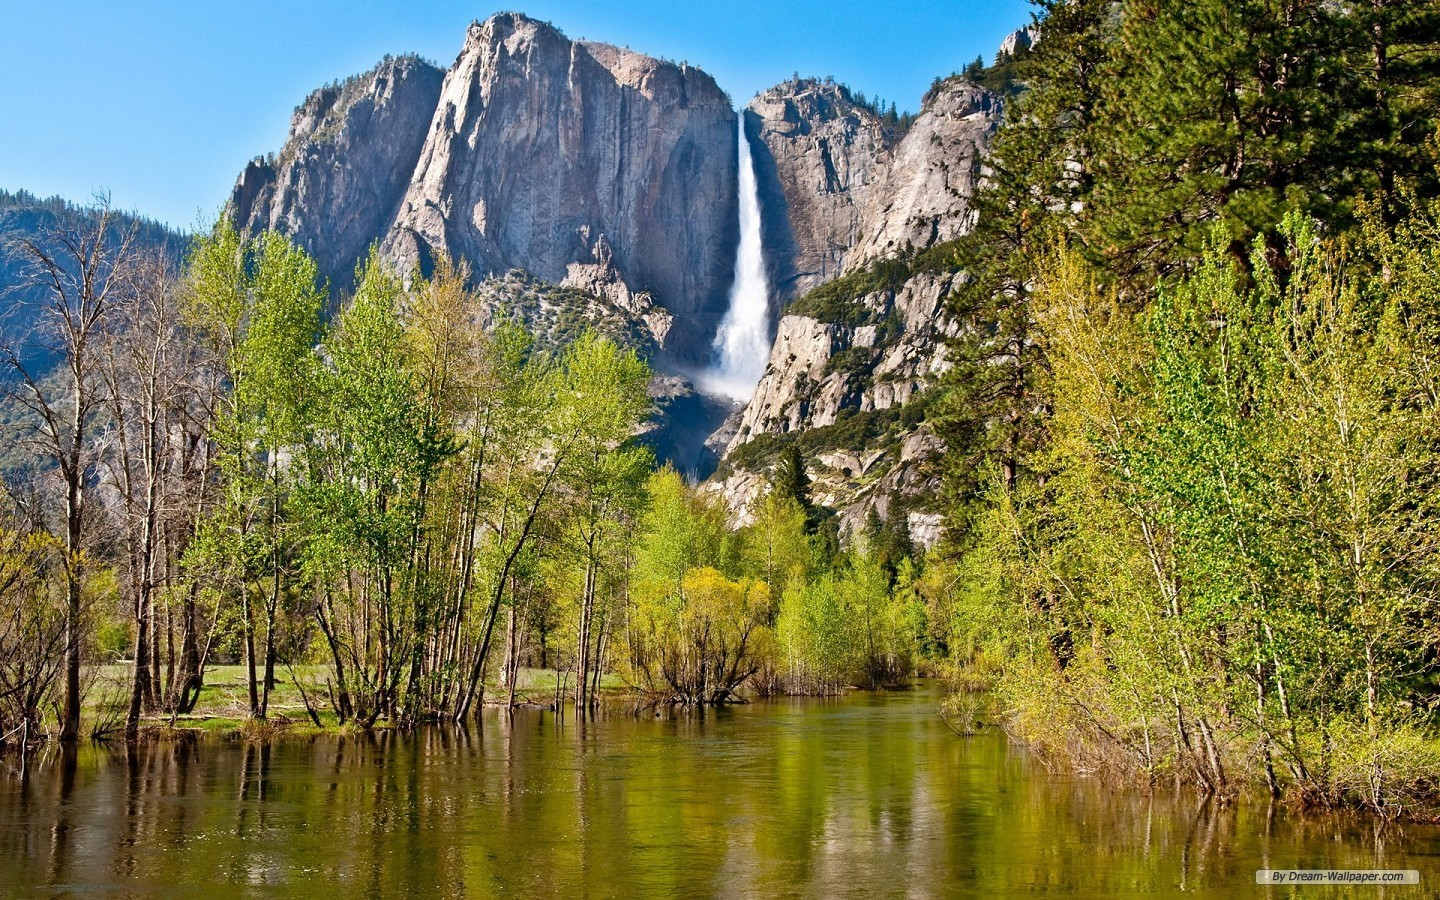 Wallpaper   Travel wallpaper   Yosemite National Park 1440x900